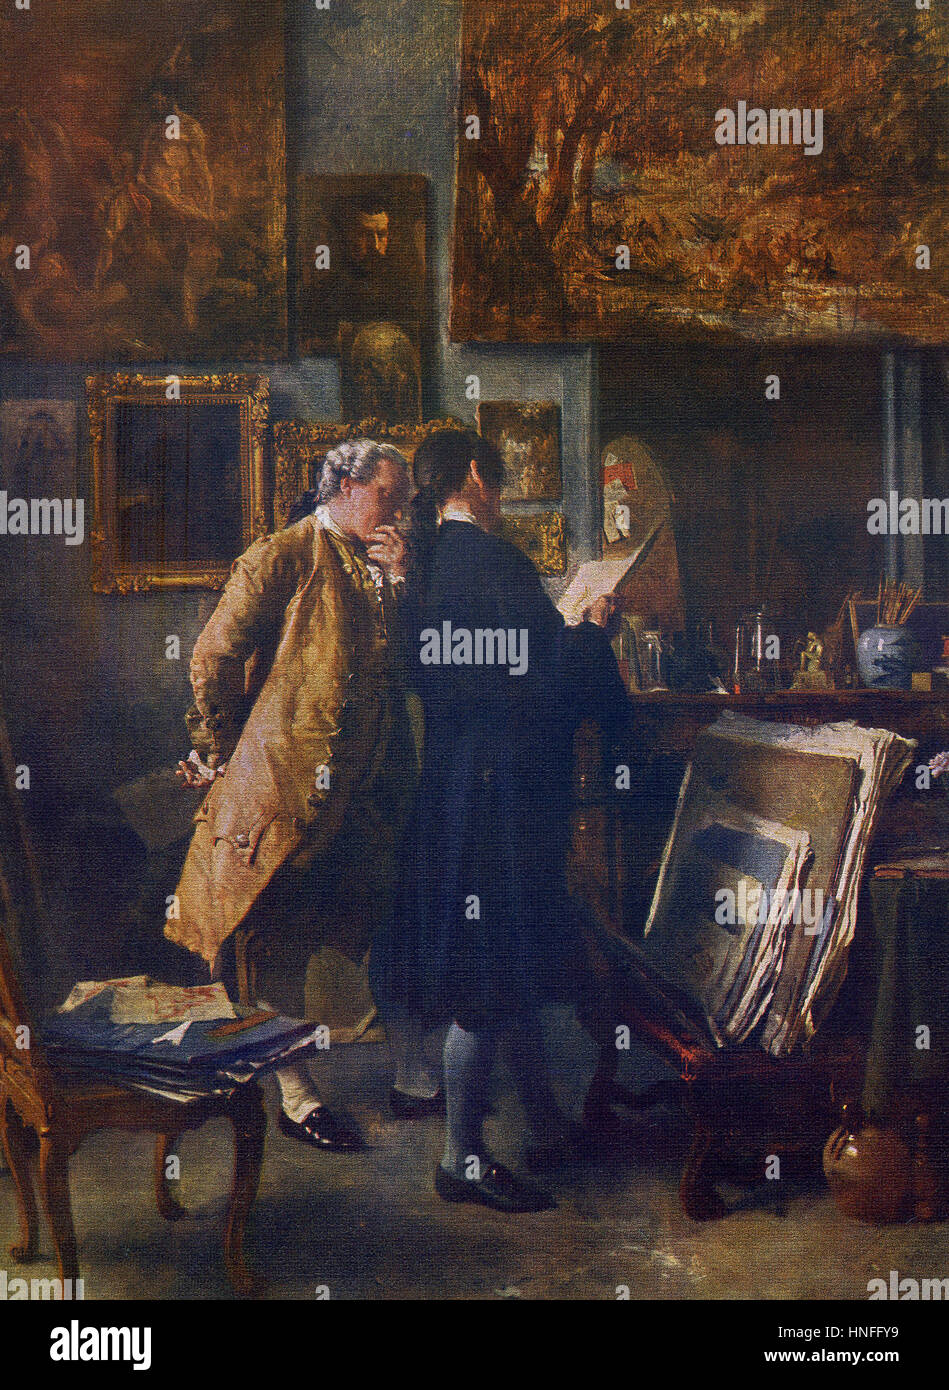 This painting, titled The Print Collector, was done by the French classicist painter Jean-Louis-Ernest Meissonier - Stock Image